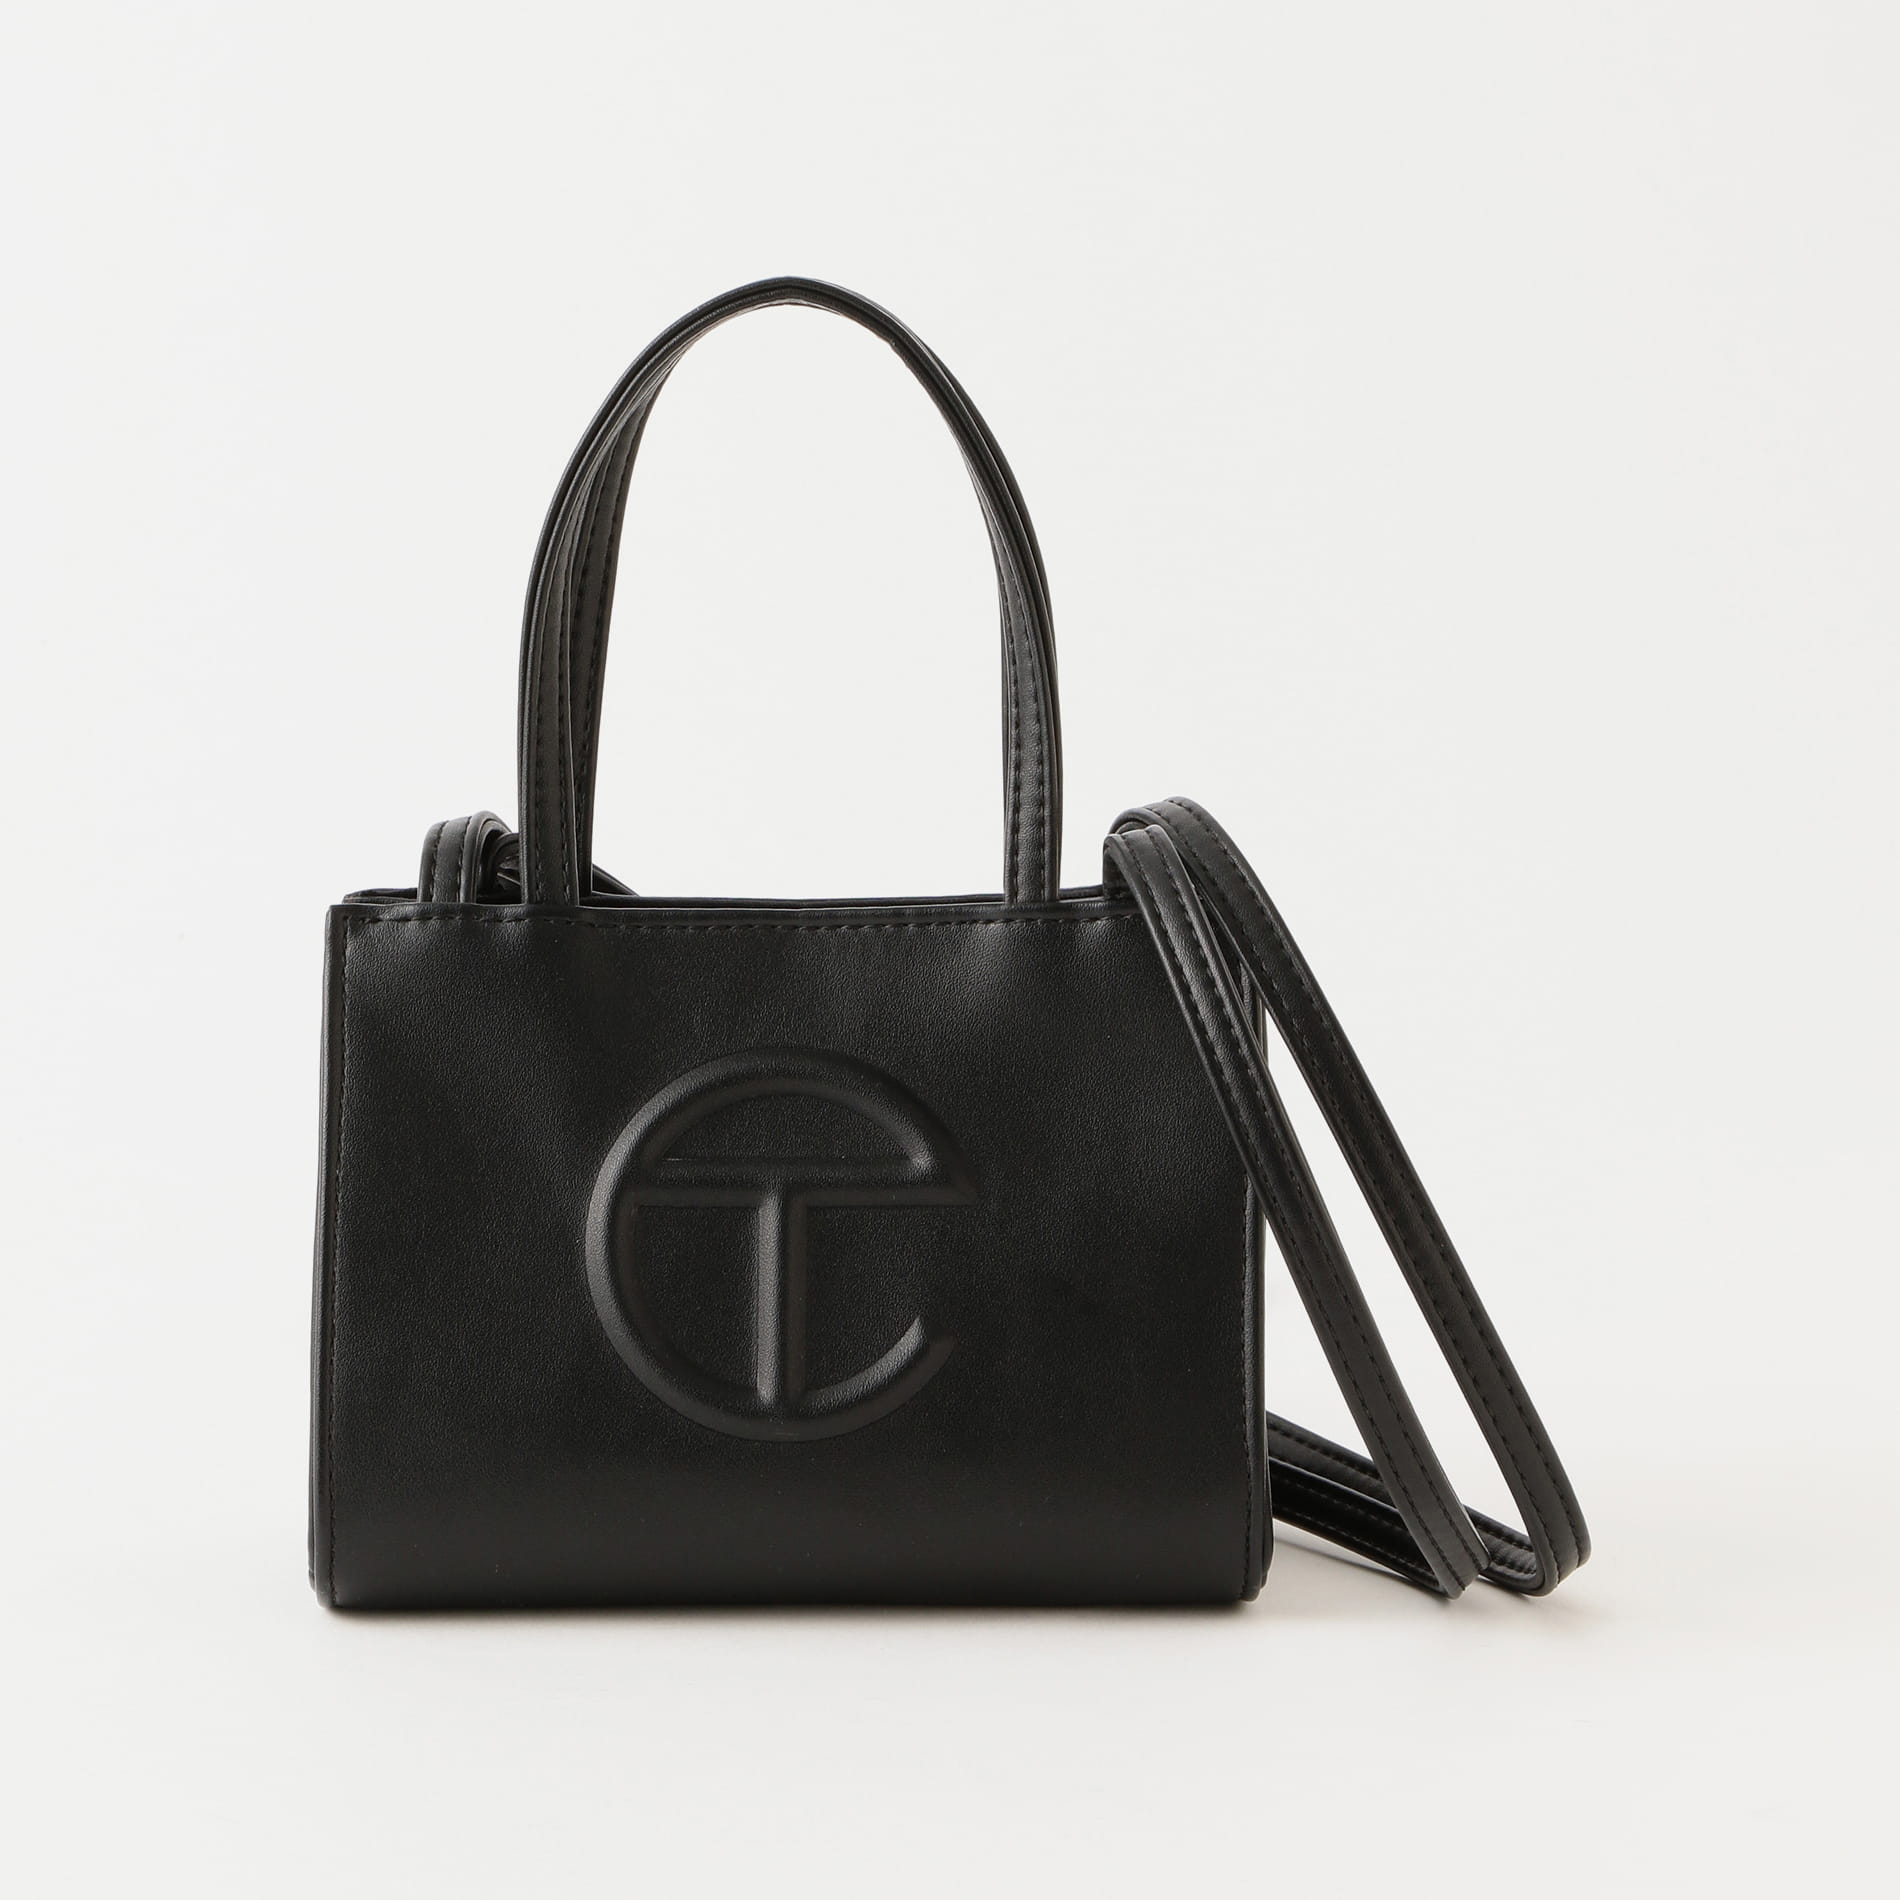 【otona MUSE掲載商品】【TELFAR】WOMEN SMALL SHOPPER TF012